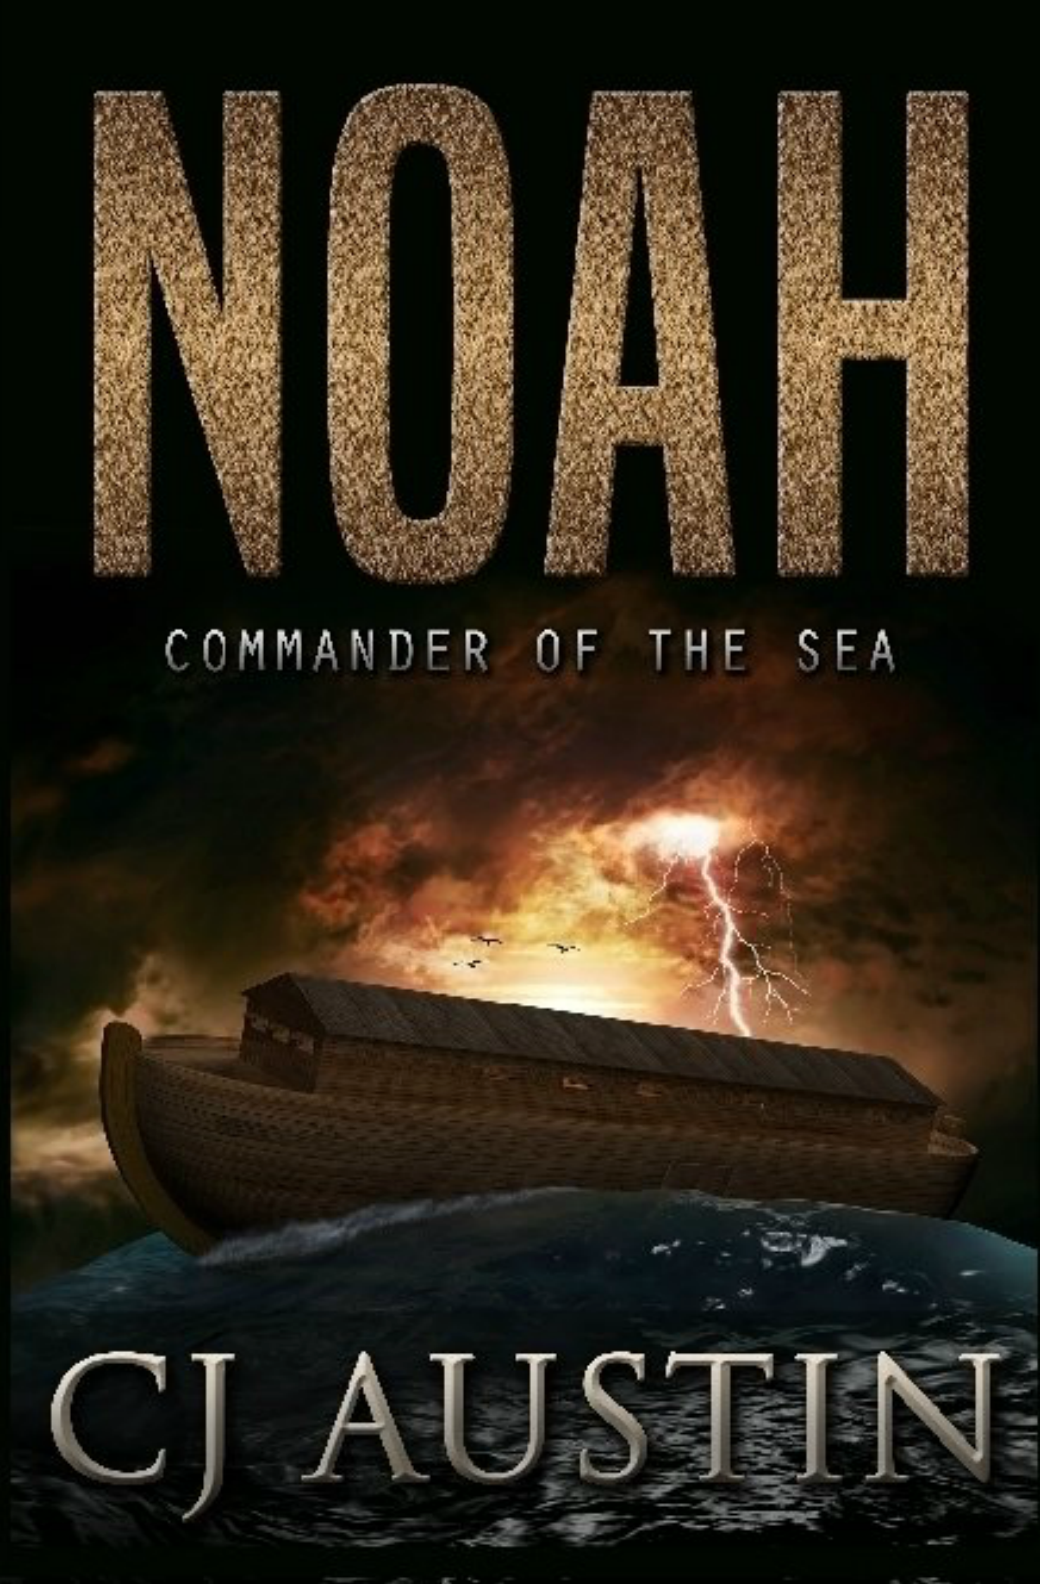 Noah: Commander of the Sea